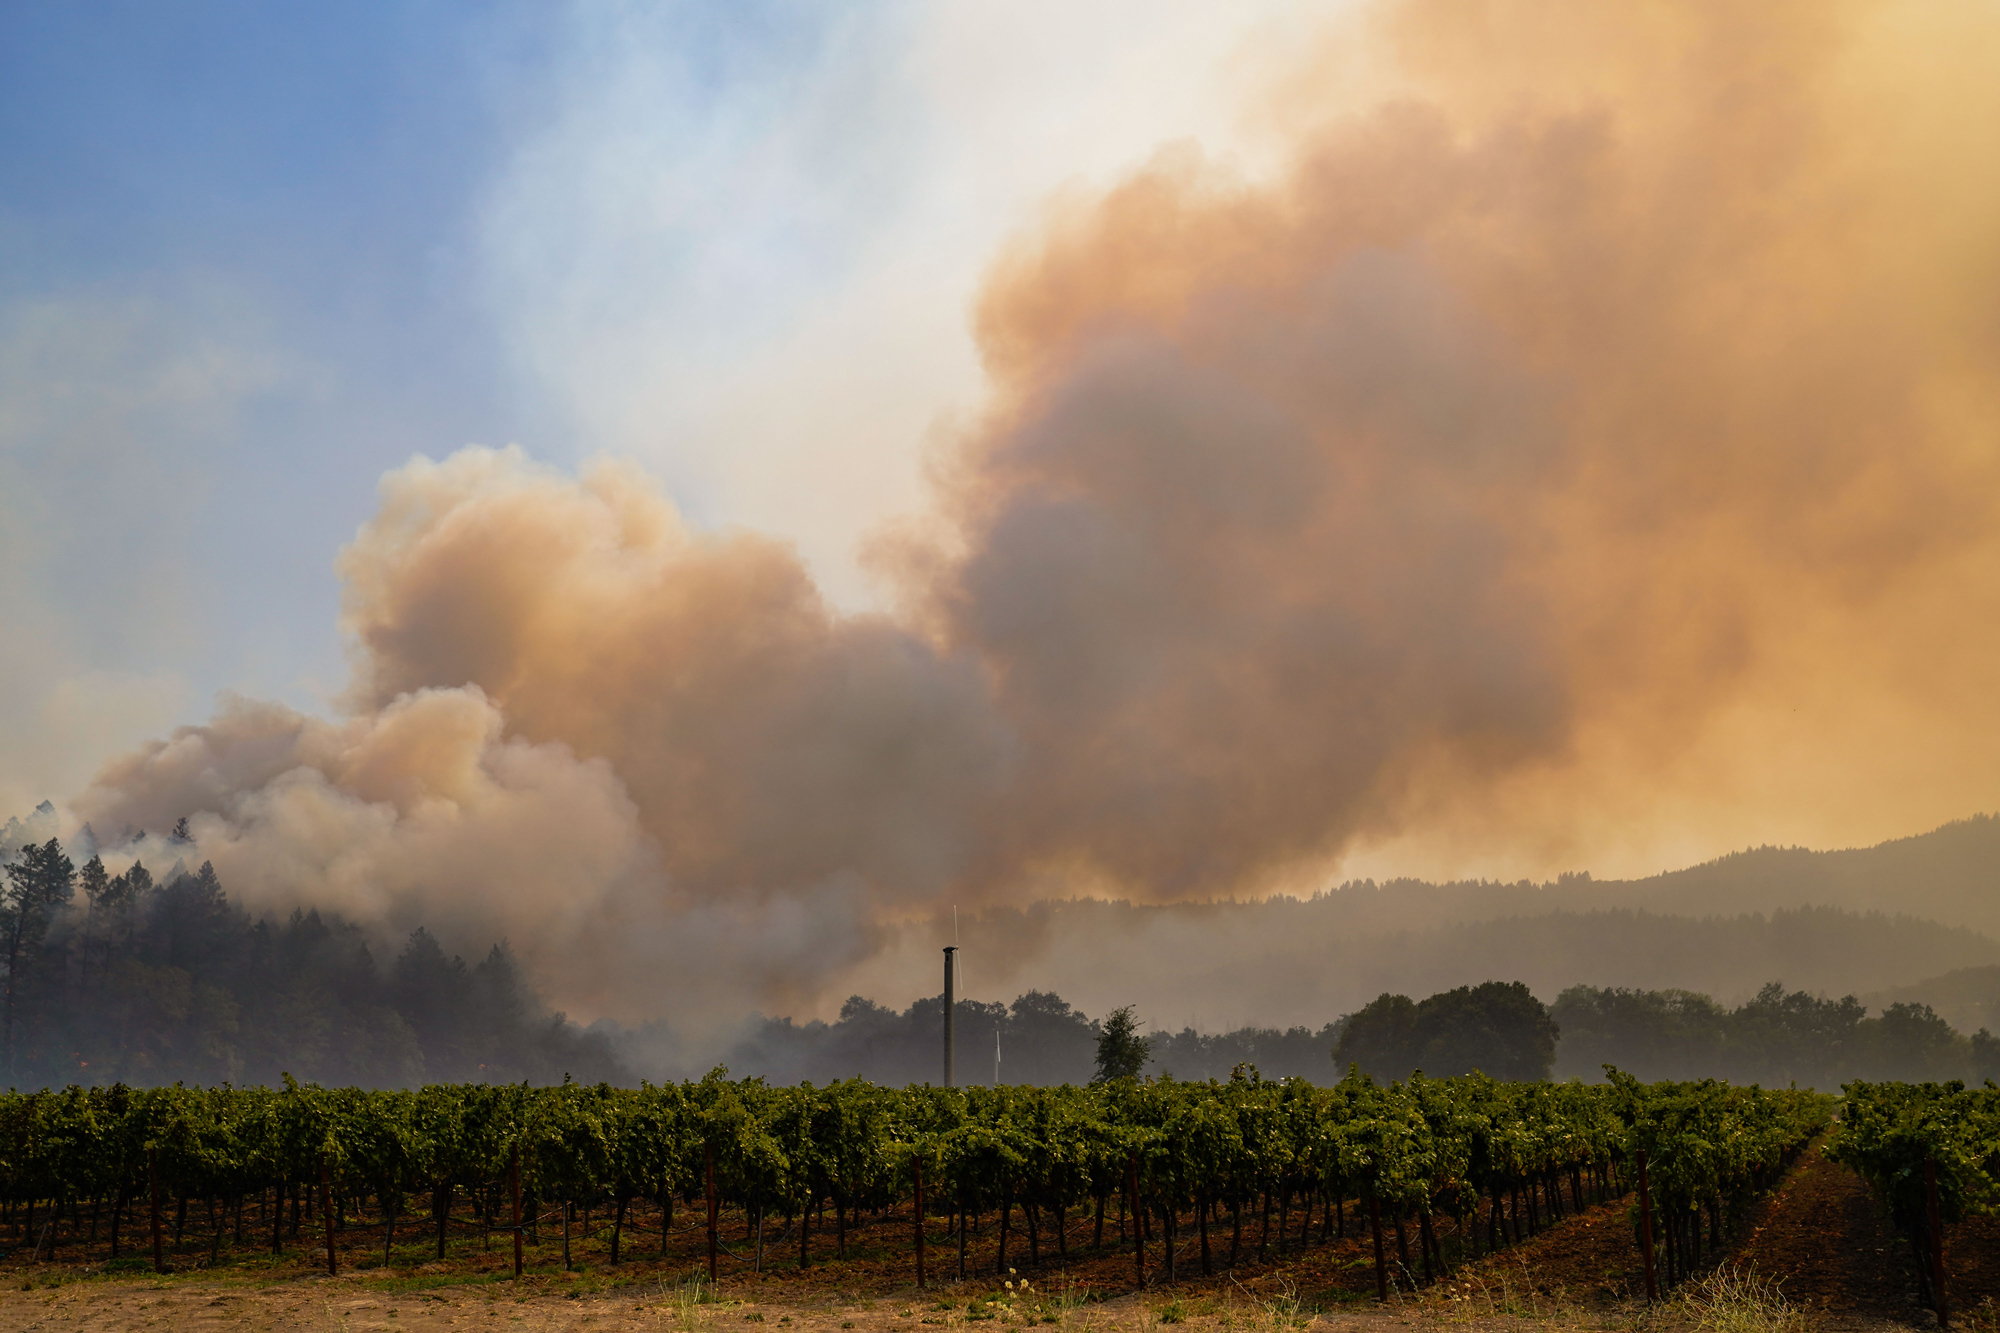 Smoke obscures the trees behind a Napa vineyard